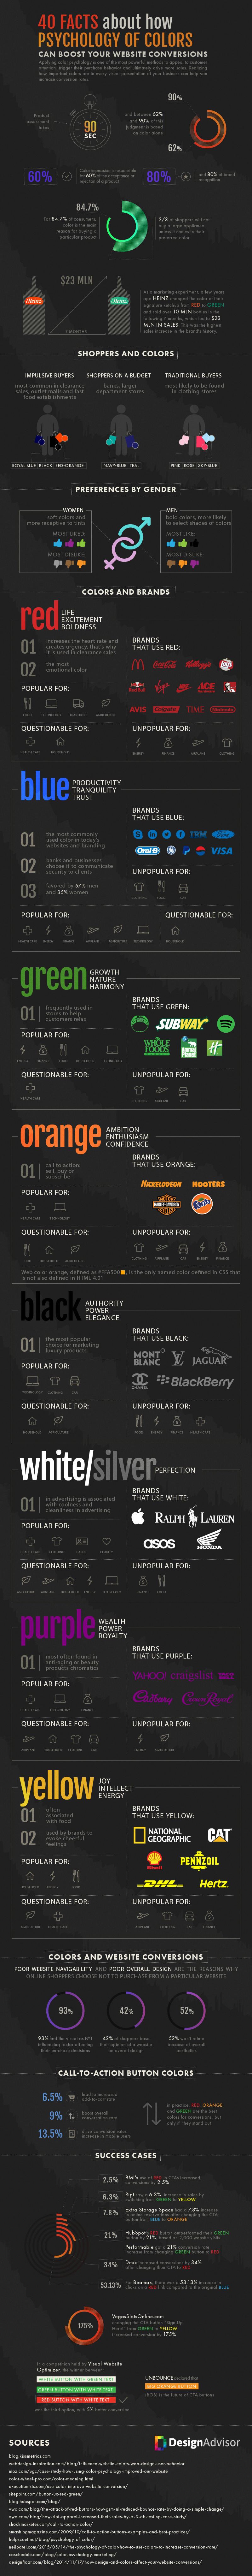 Infographic on color